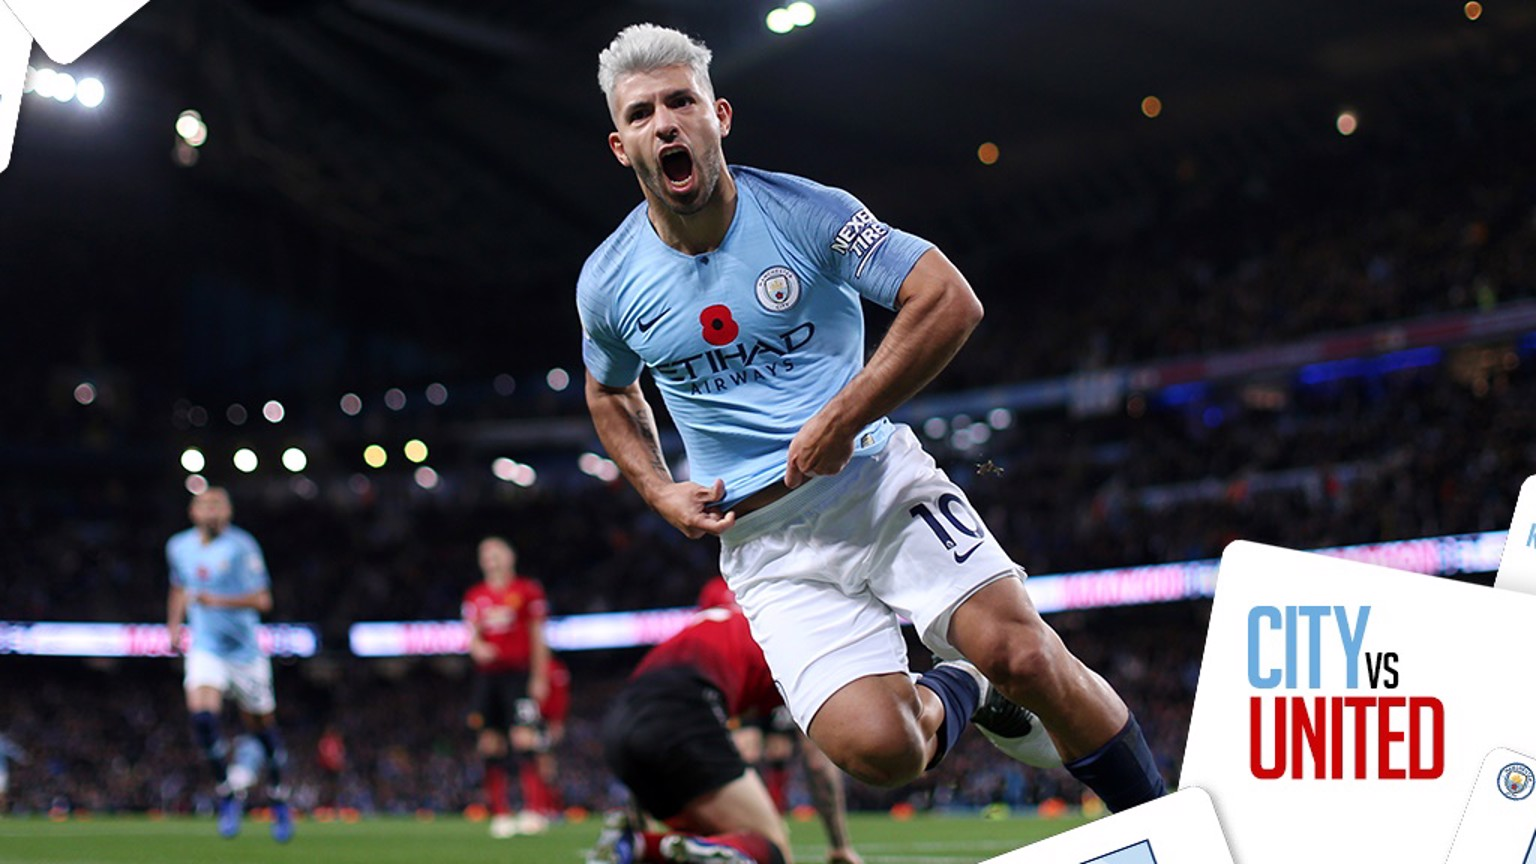 Dominant City win Manchester derby